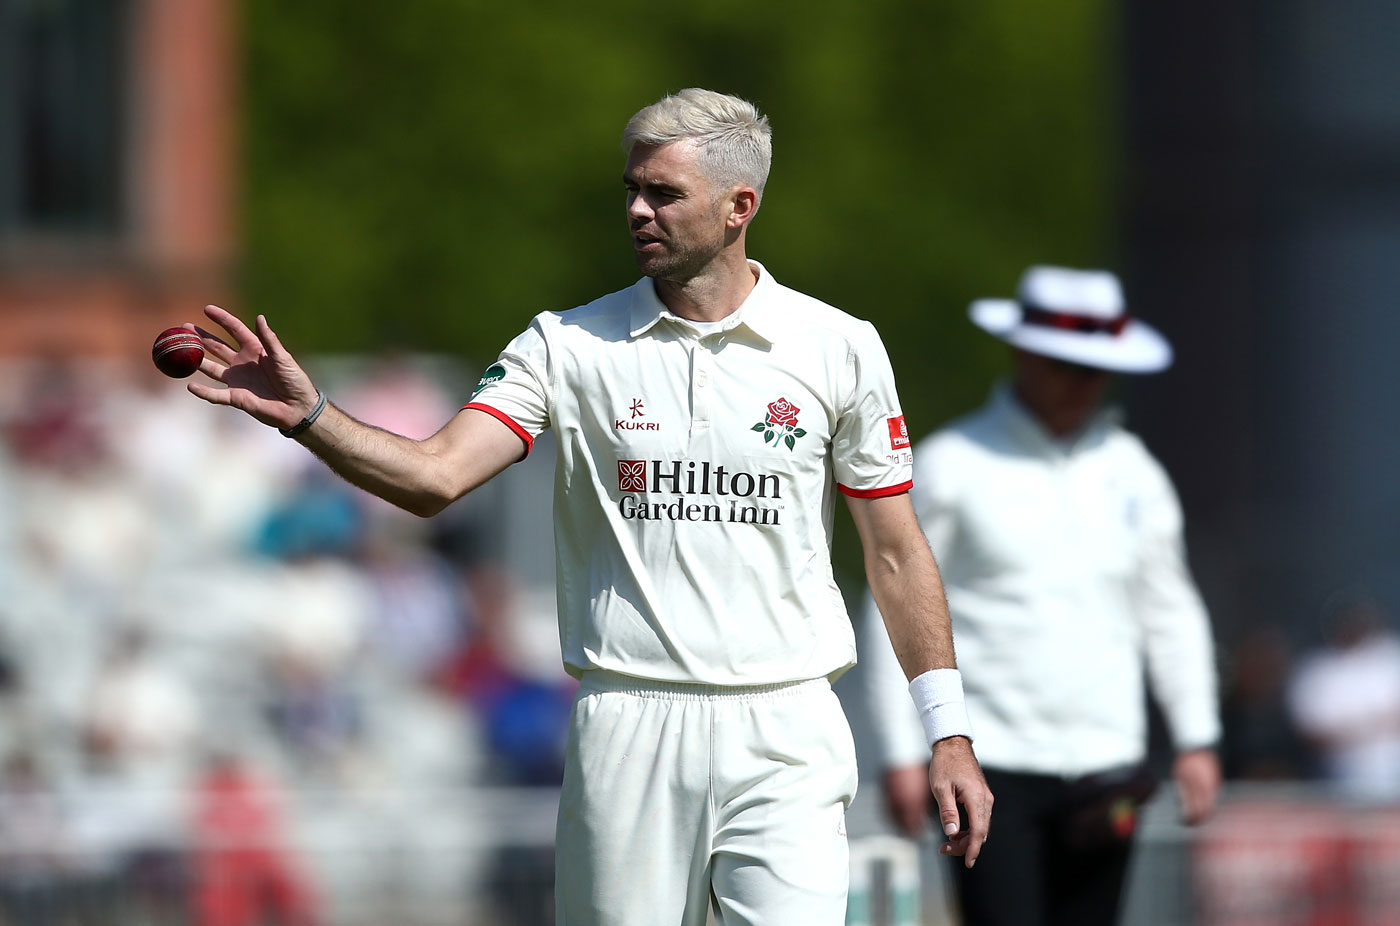 James Anderson Slams 'Ridiculous' Scheduling' of Test Series against India 2